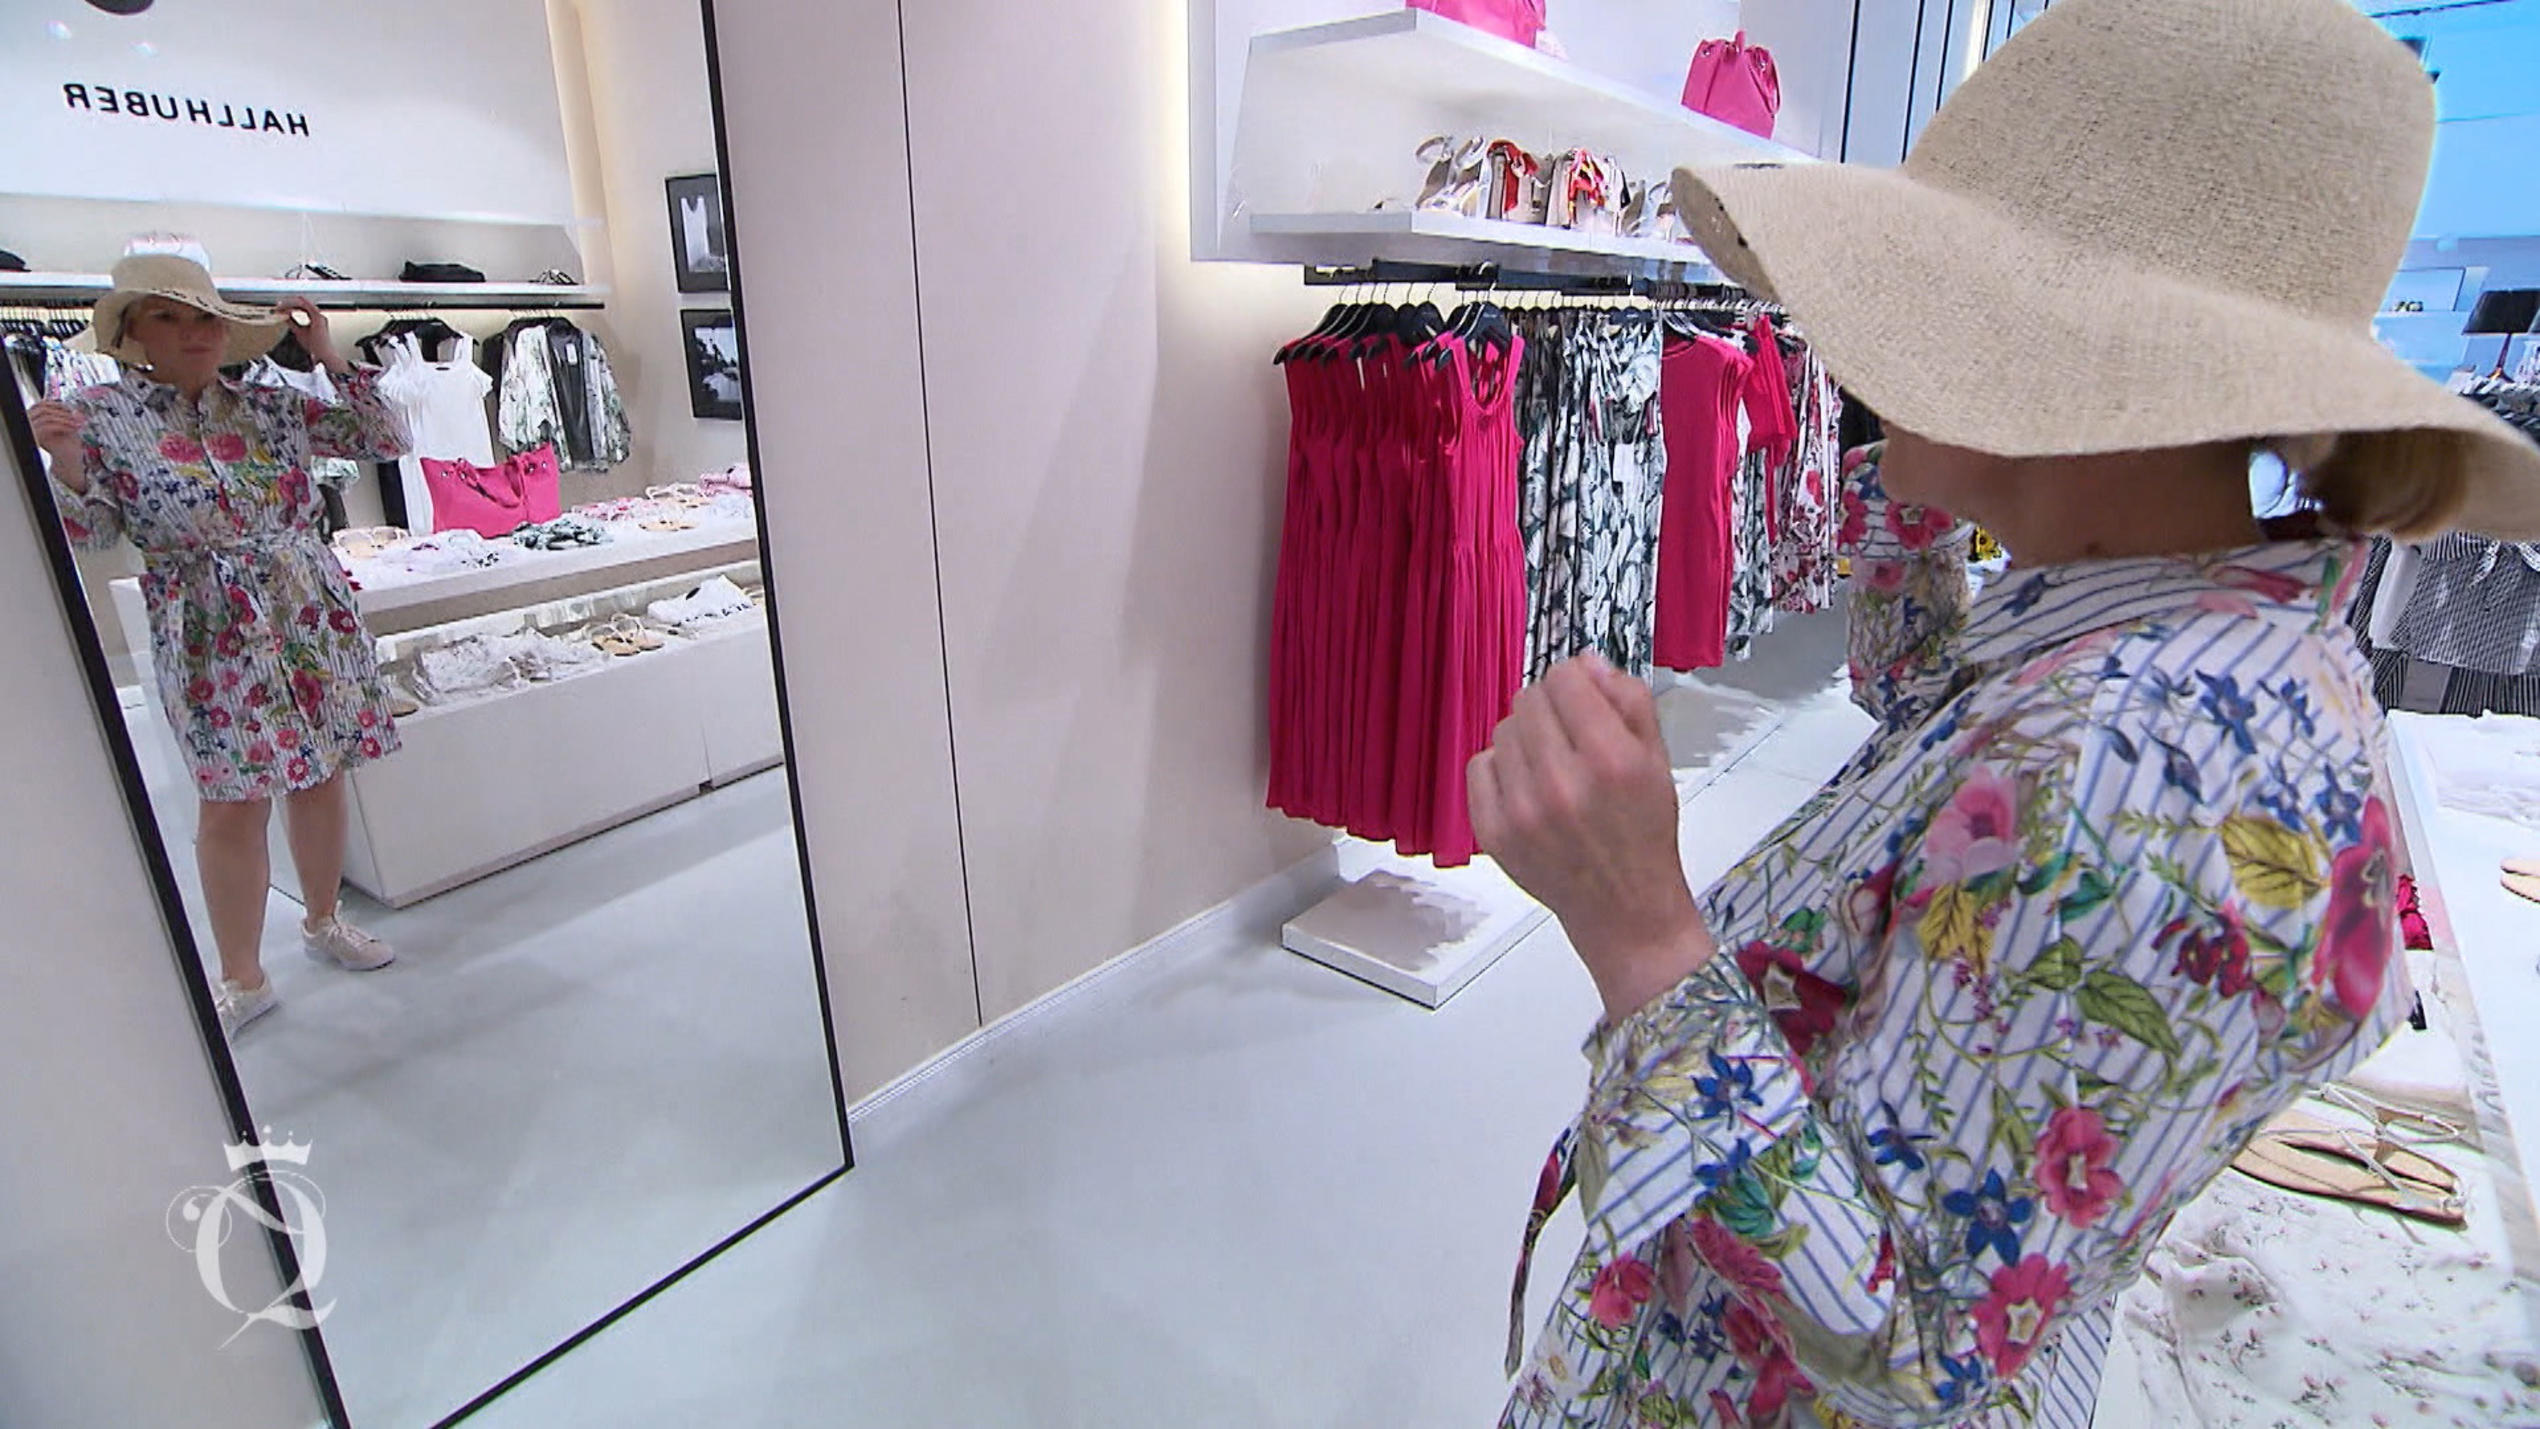 Shopping Queen in Köln: Dienstagskandidatin Rike beim Shoppen